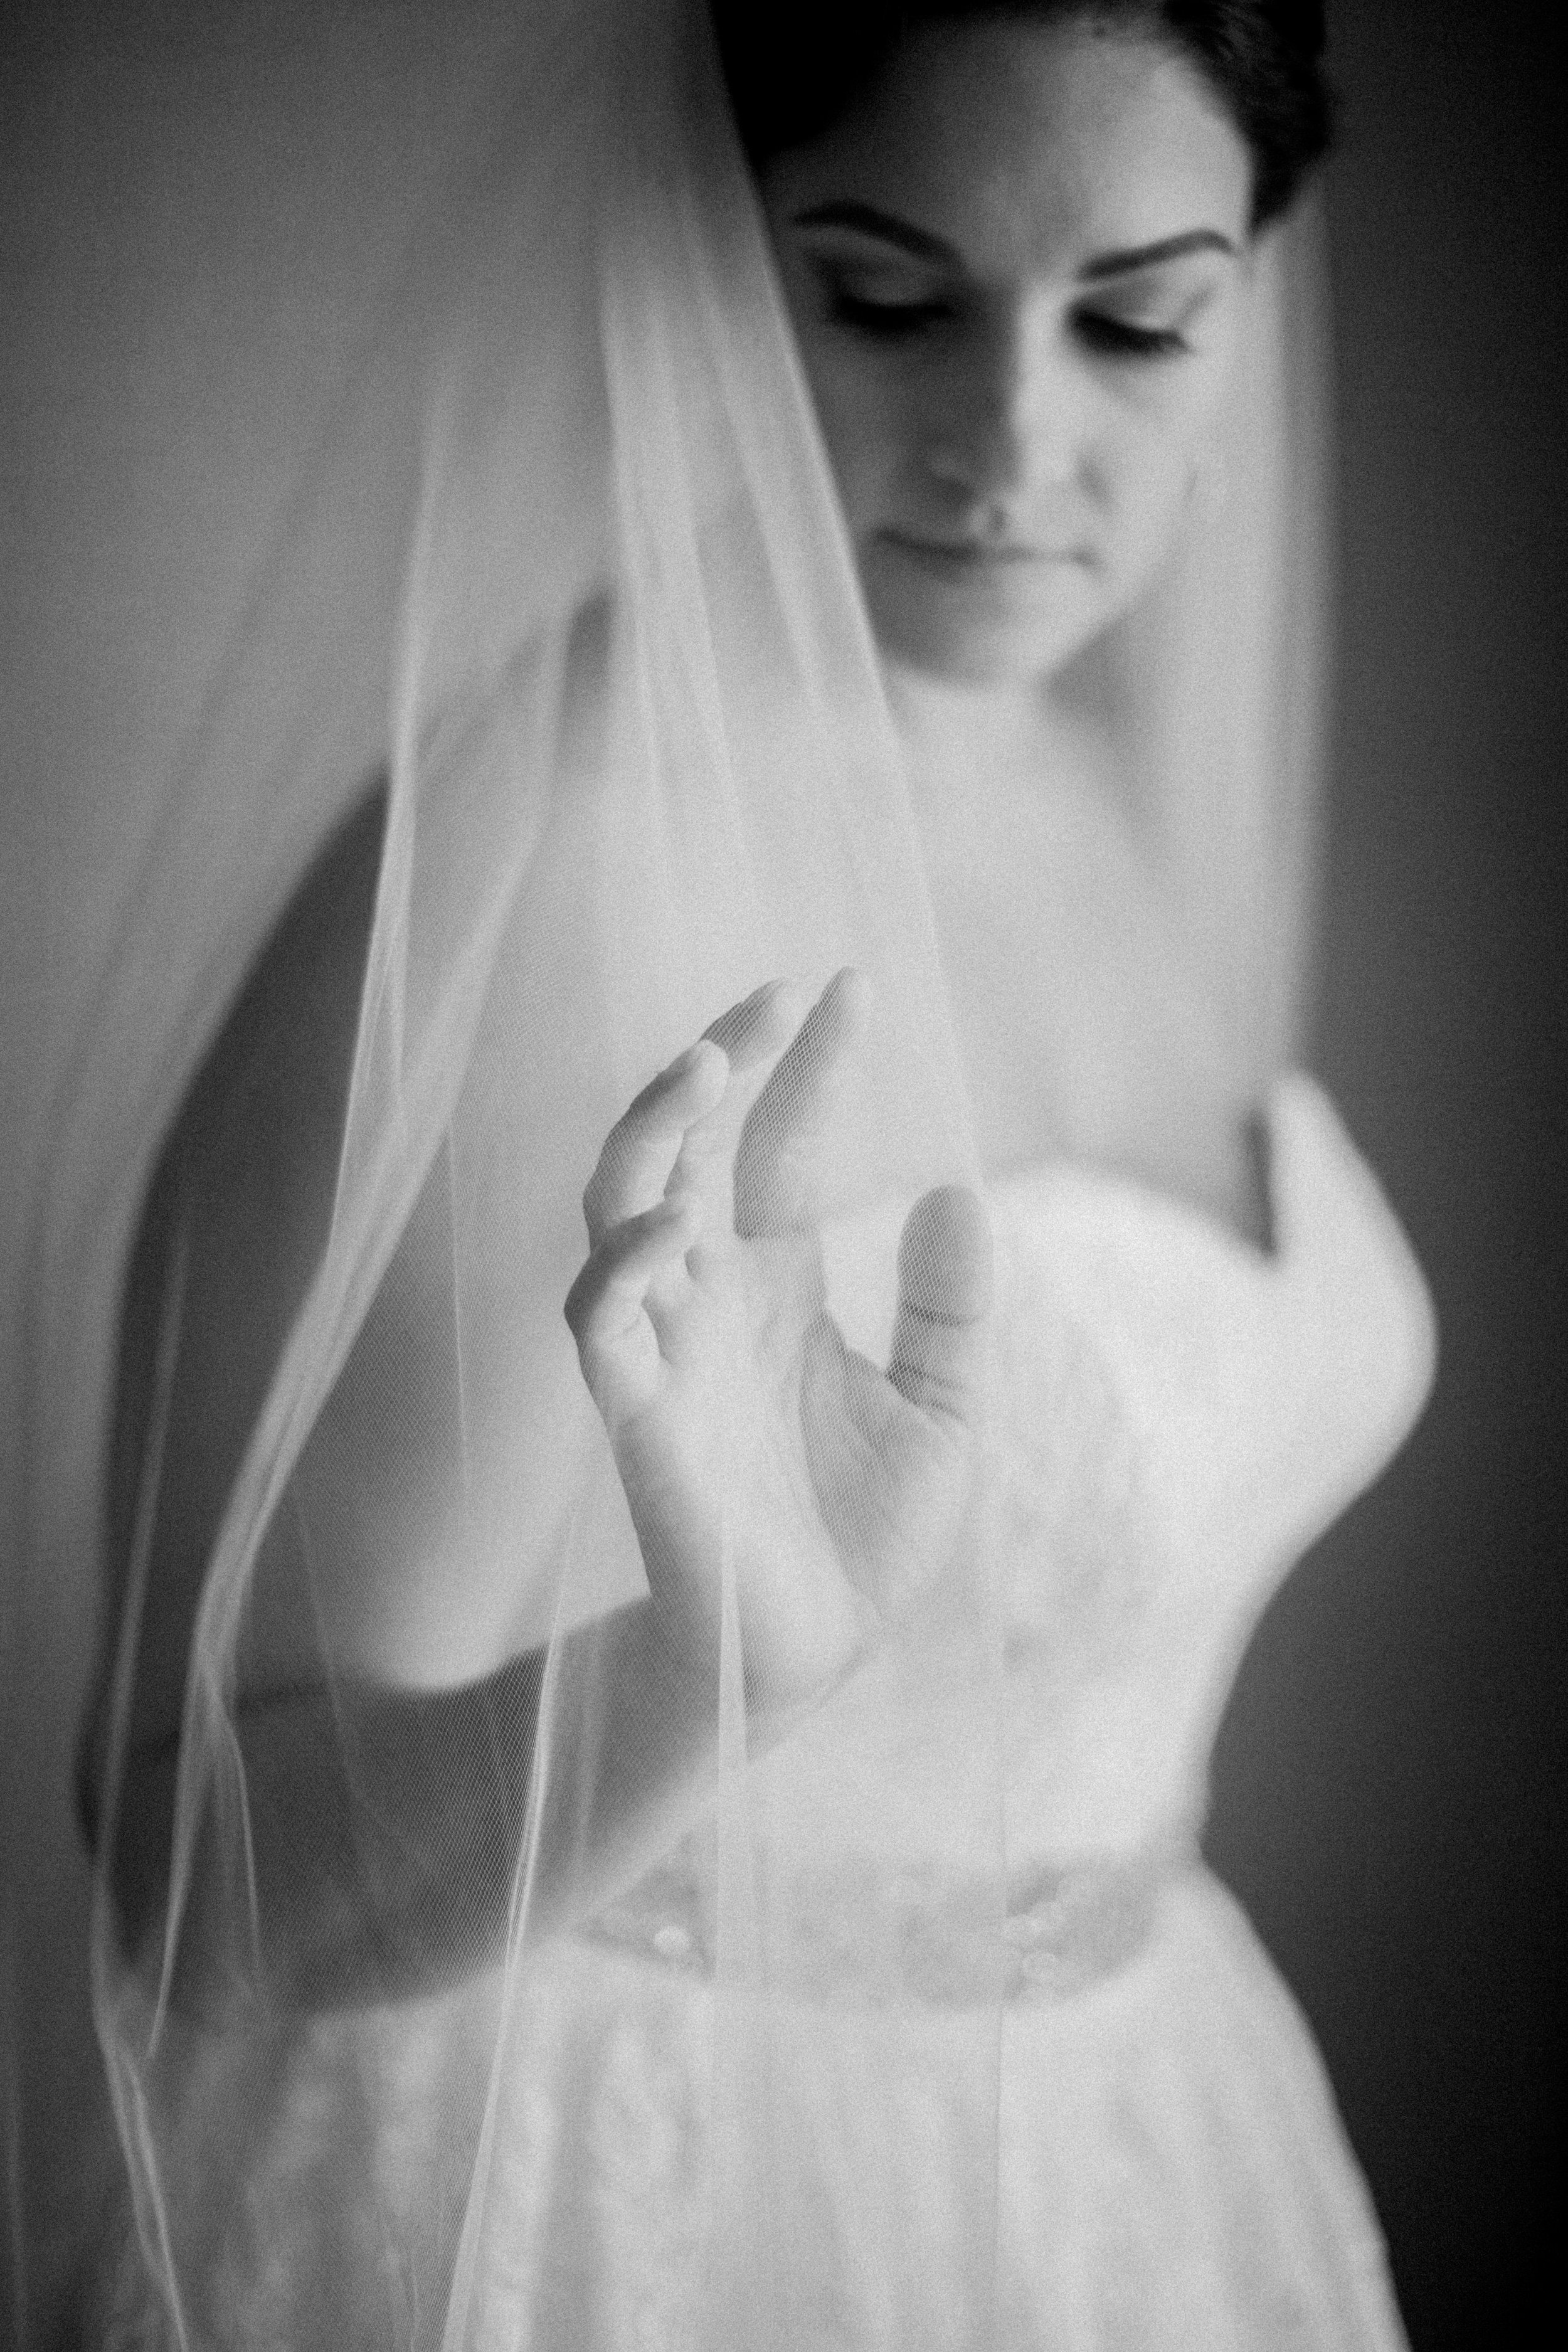 I love this image of Liz getting ready, as she slowly runs her fingers through the fabric of her veil on her wedding day.